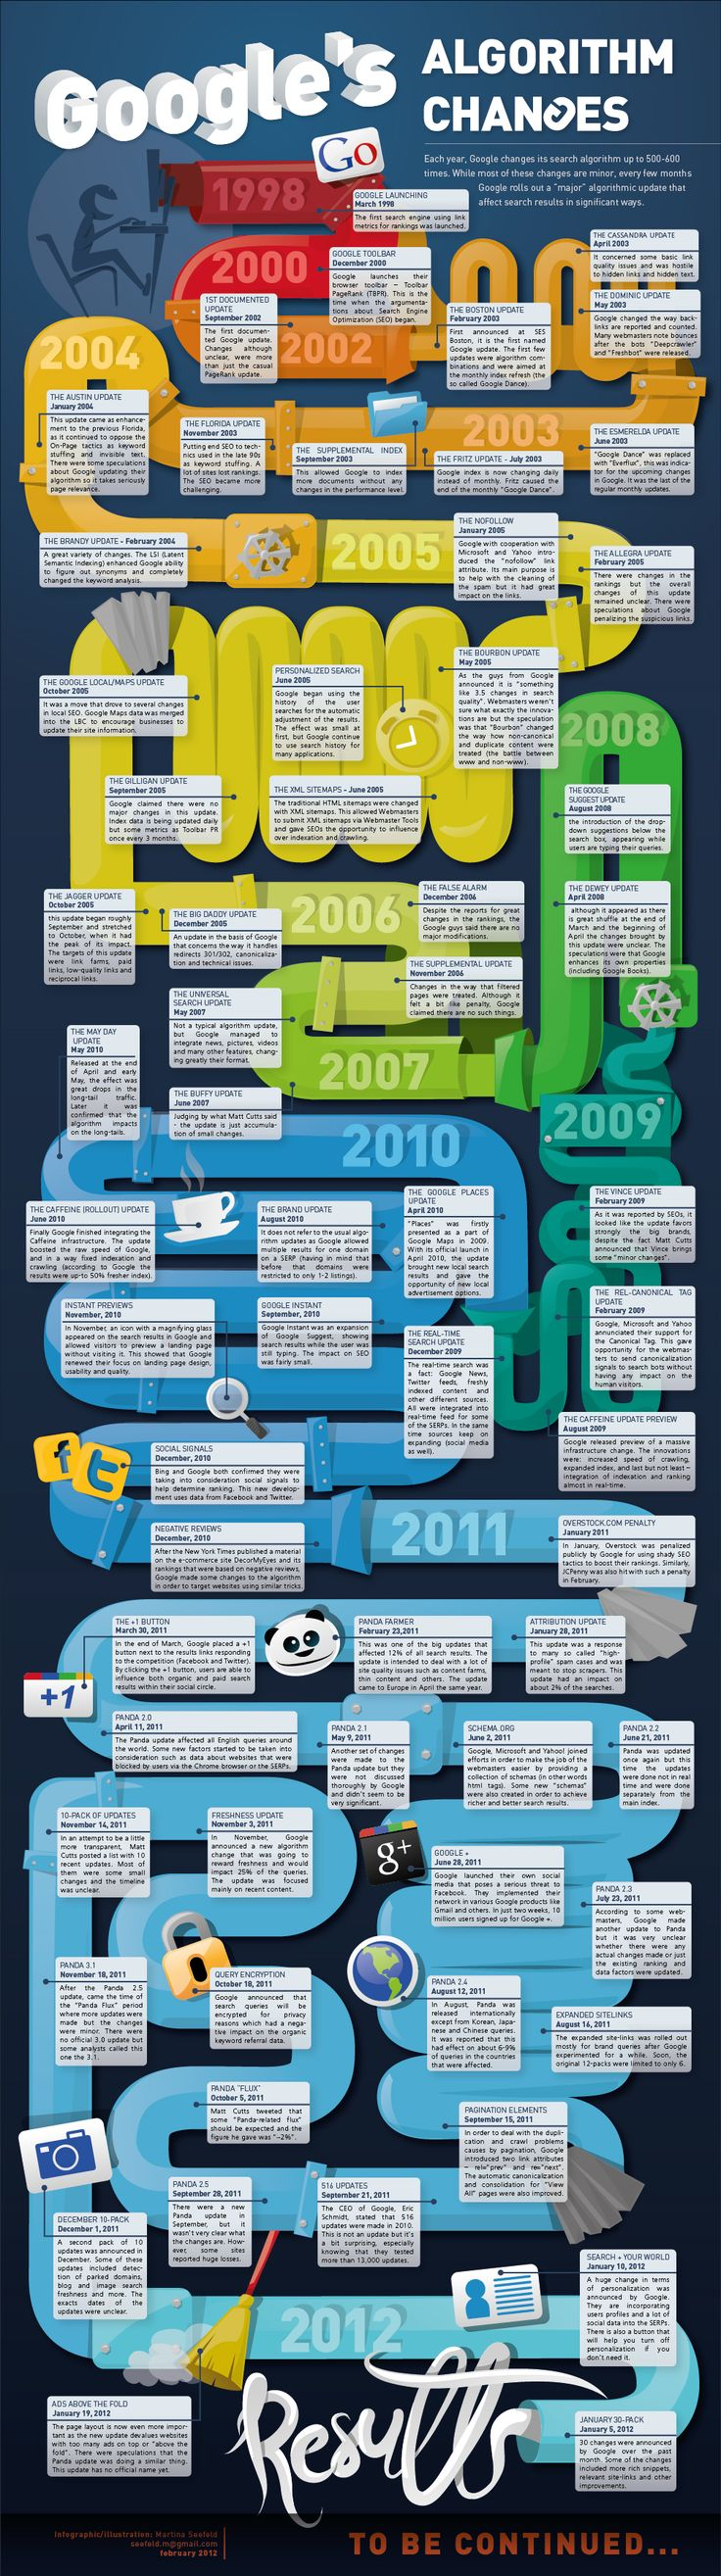 Google Algorithm Changes #Infographic: Each year Google changes its  algorithm more than 500 times